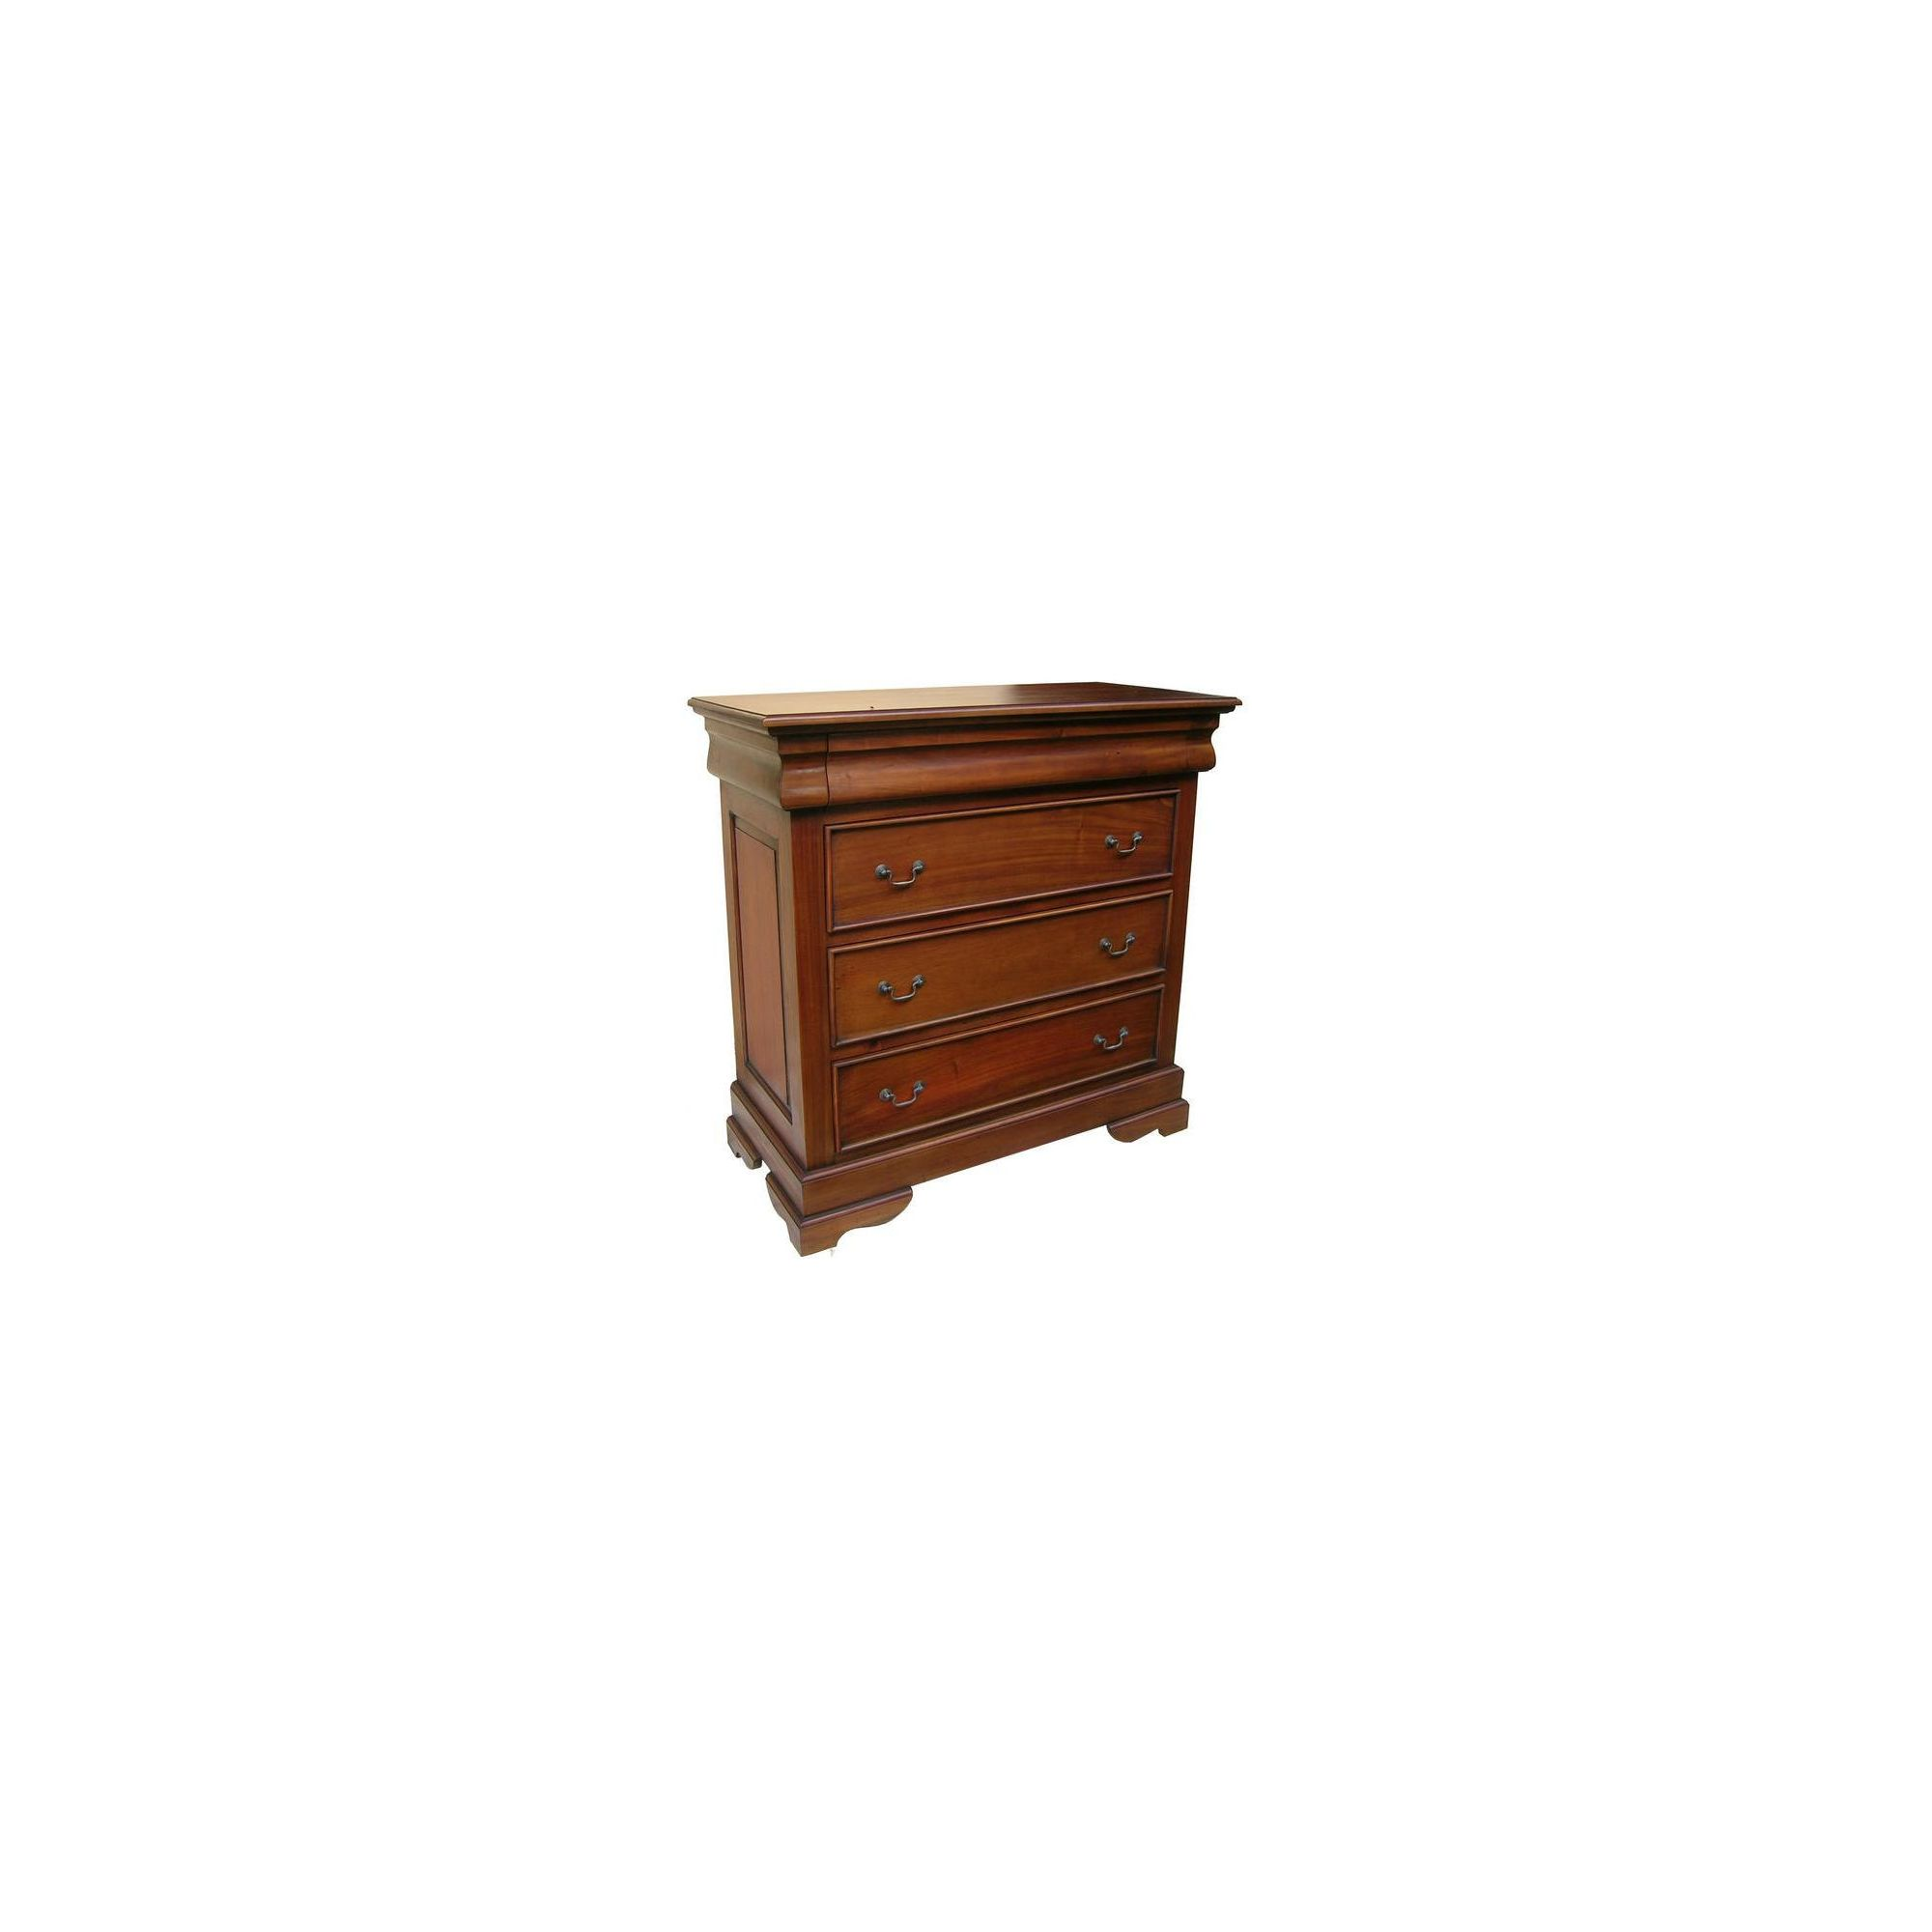 Lock stock and barrel Mahogany 3 Drawer Sleigh Chest - Wax at Tesco Direct